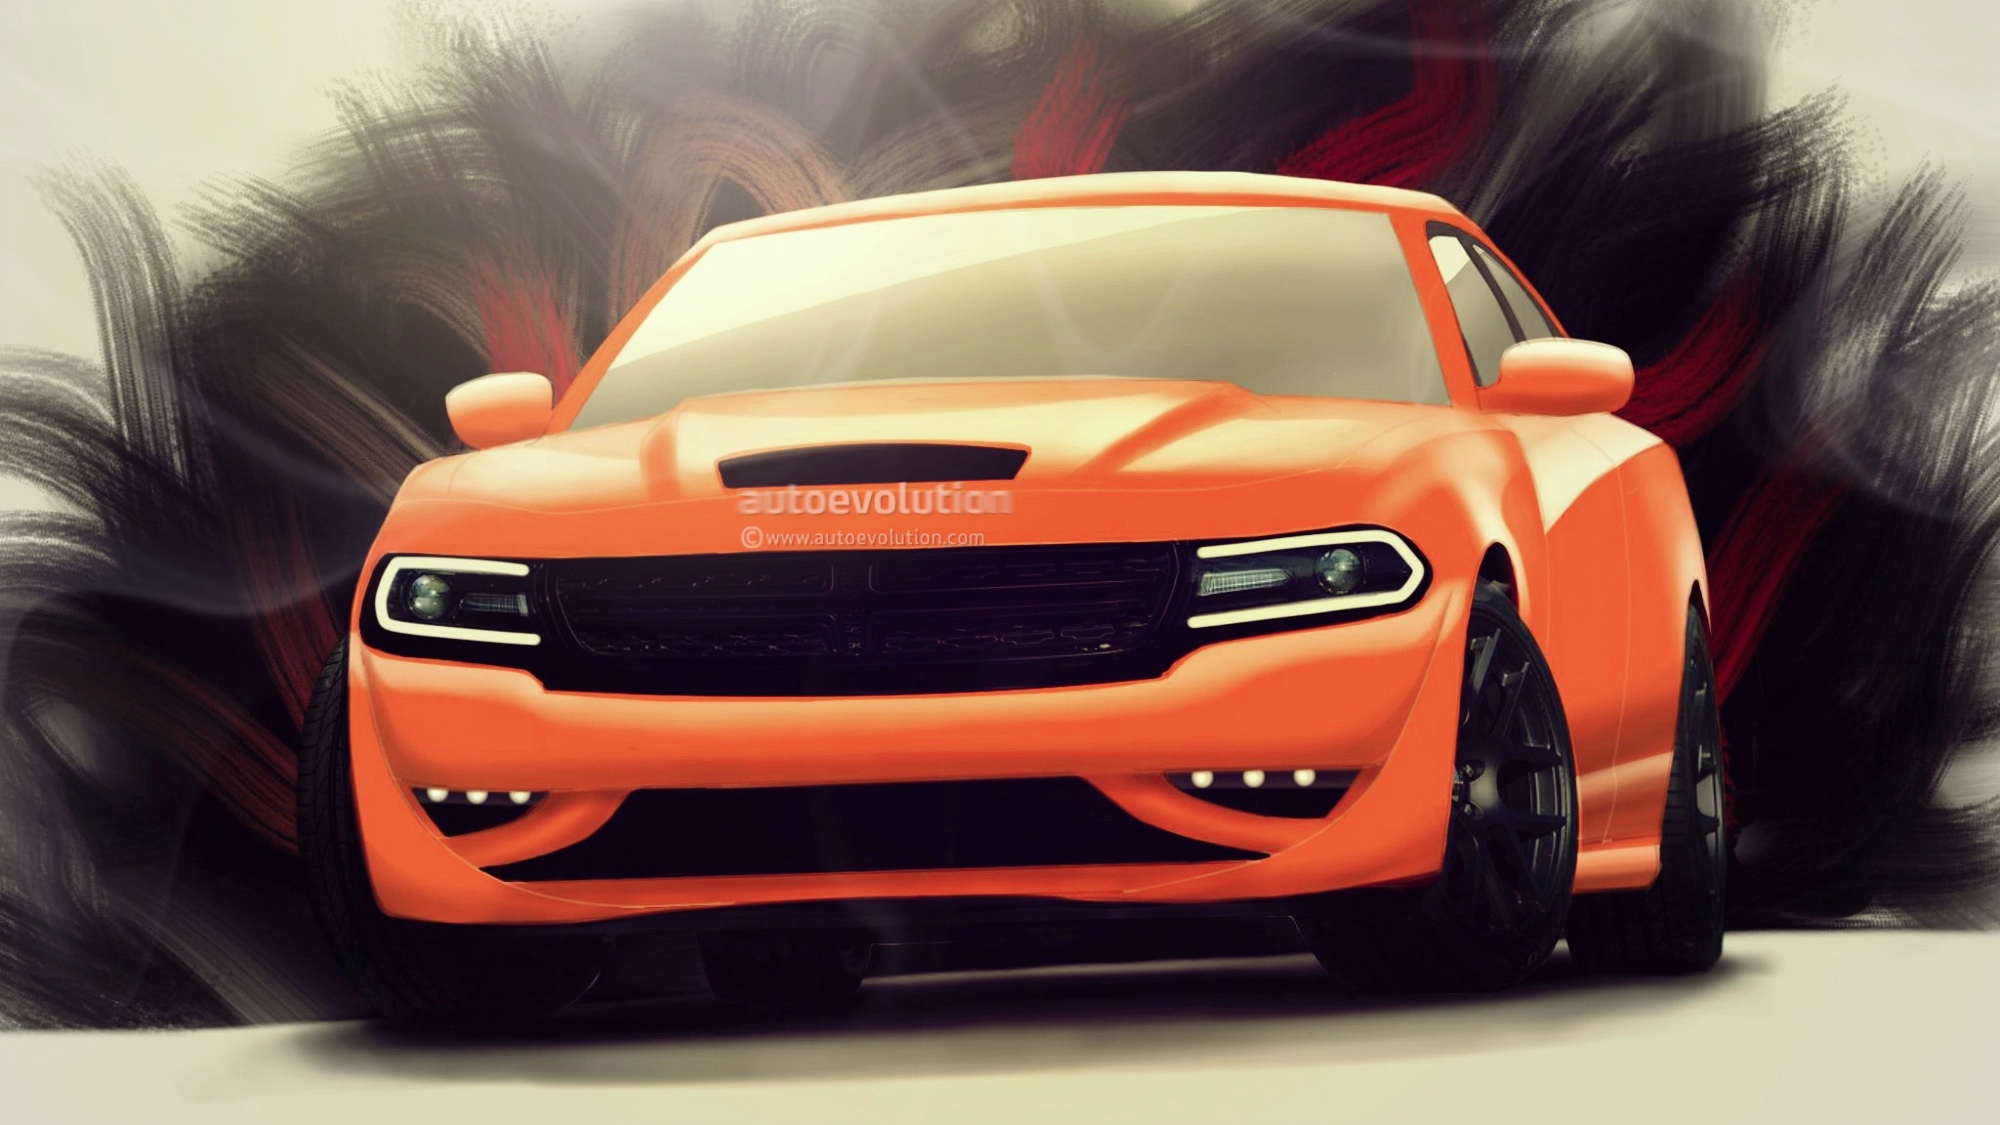 dodge charger hellcat wallpaper hd - photo #11